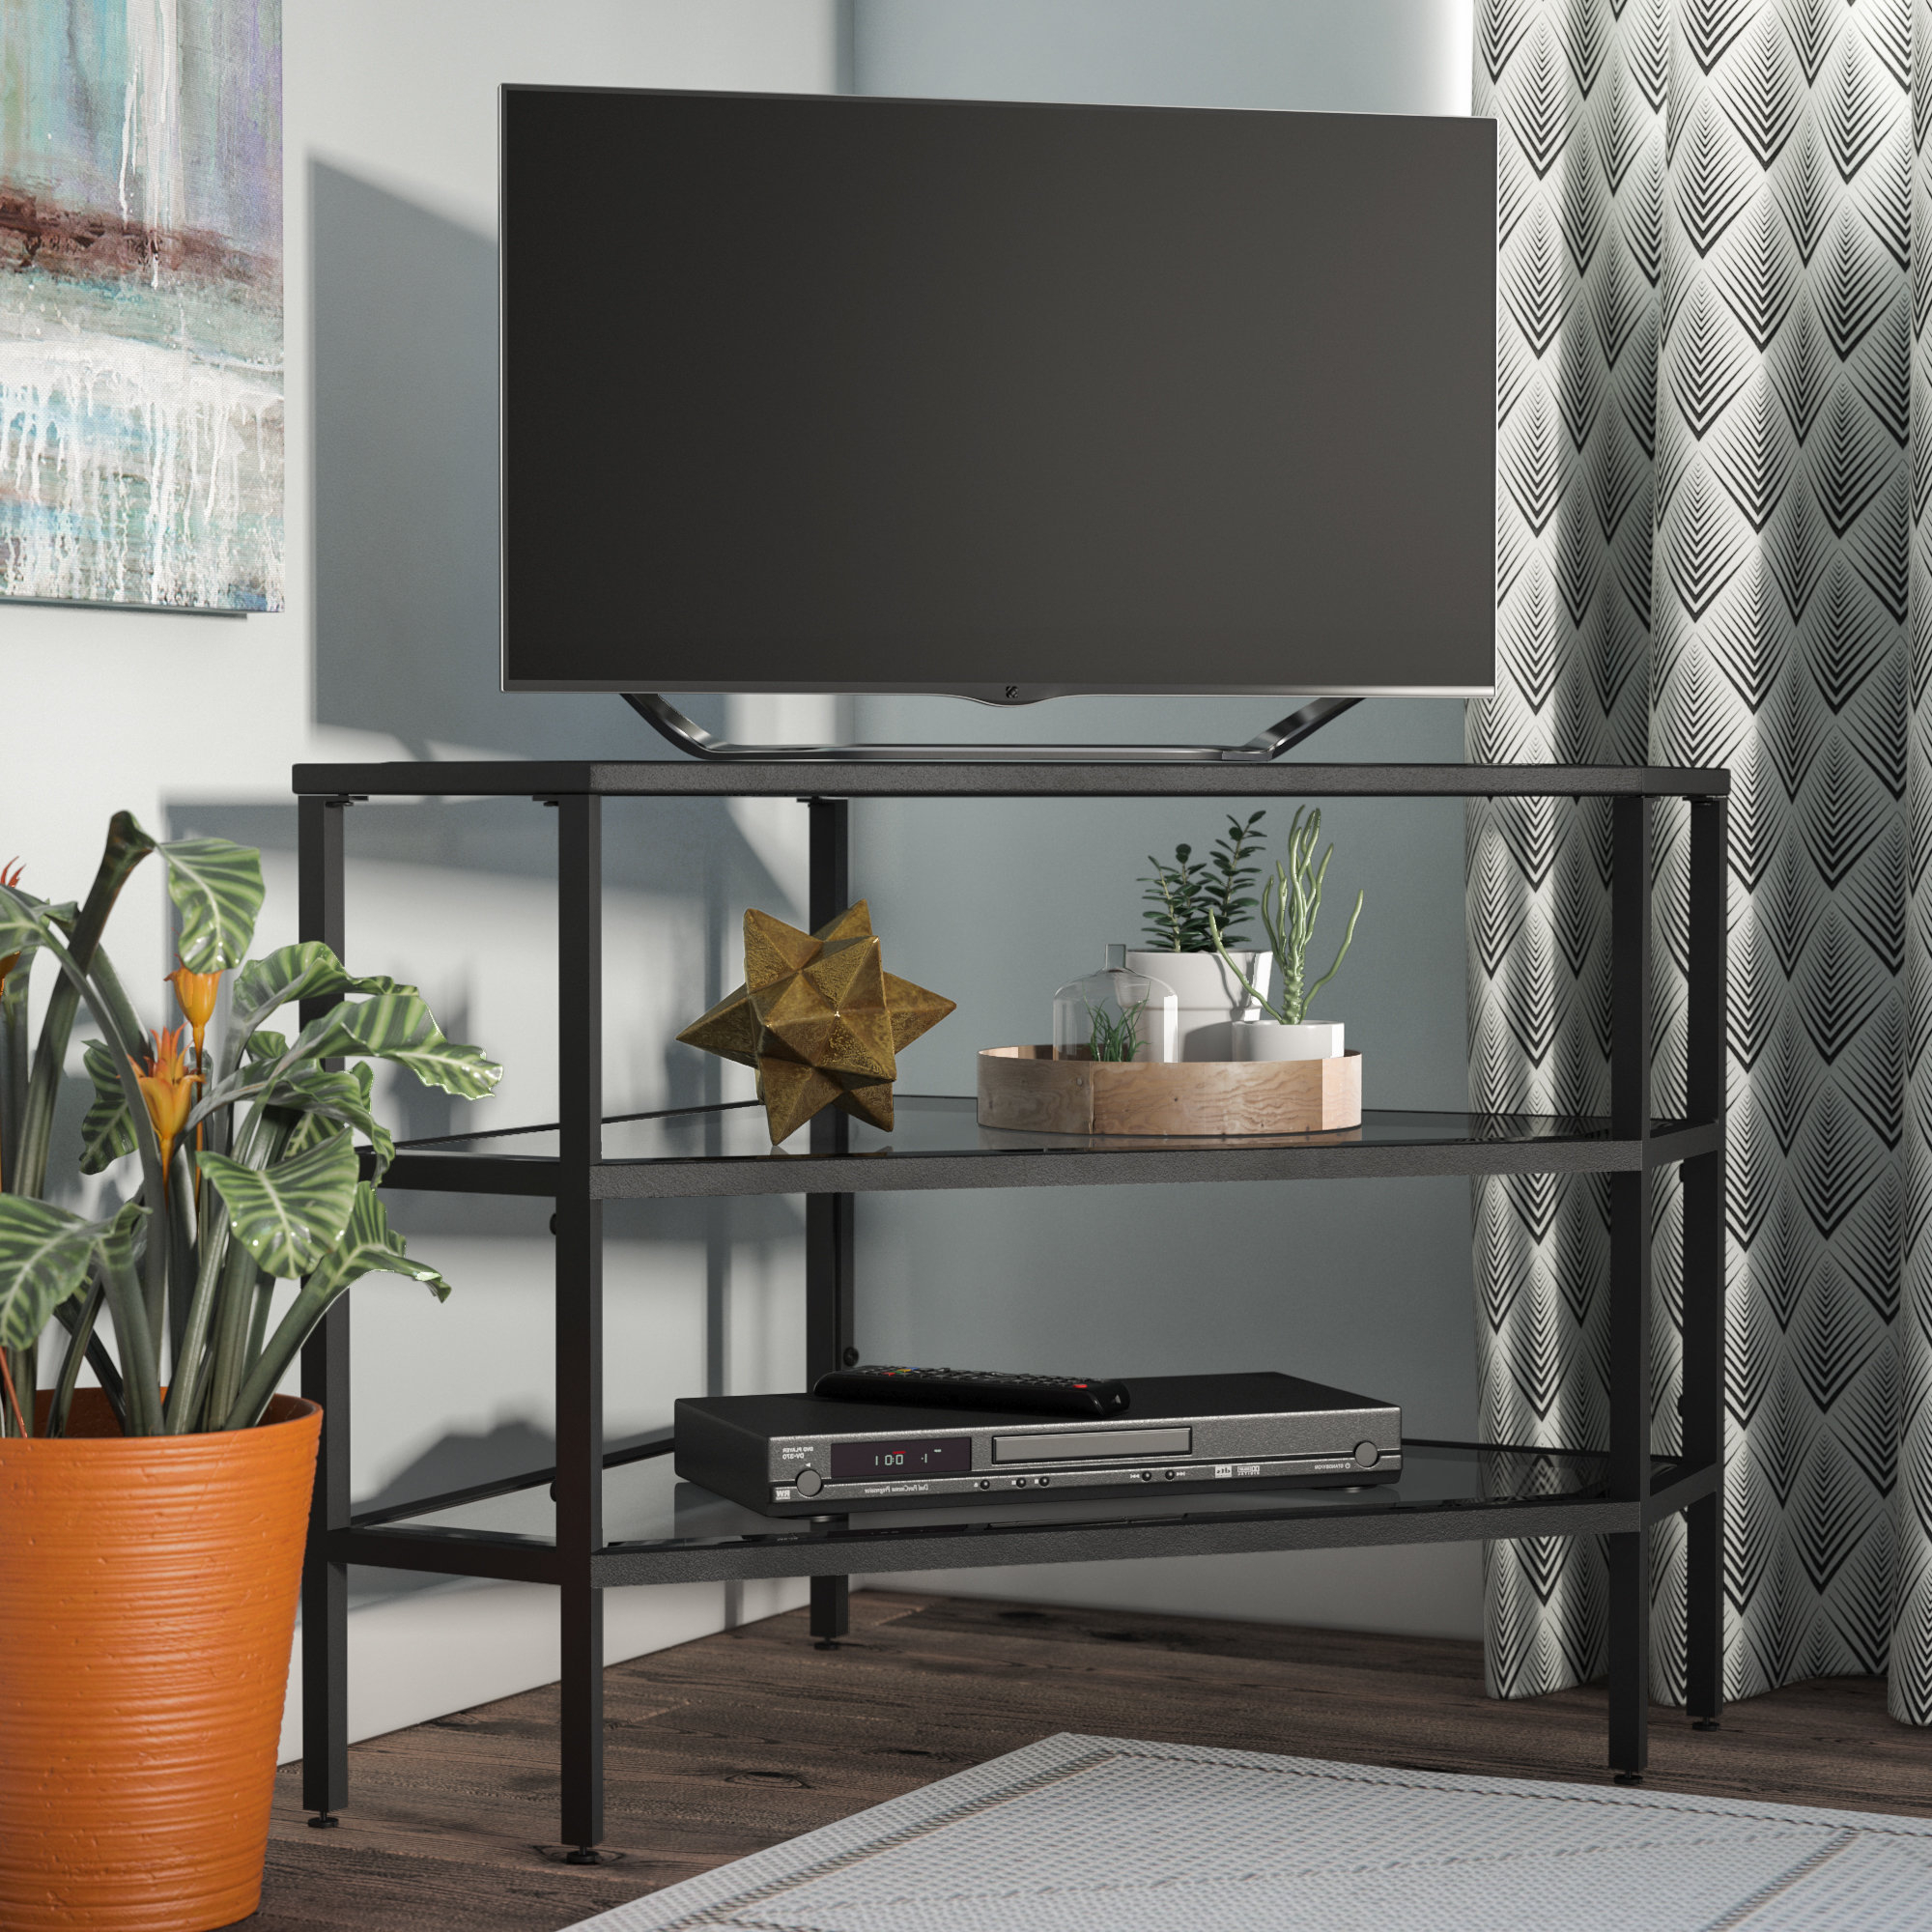 Corner Tv Stands You'll Love With 2018 Corner Tv Stands For 60 Inch Flat Screens (Gallery 10 of 20)